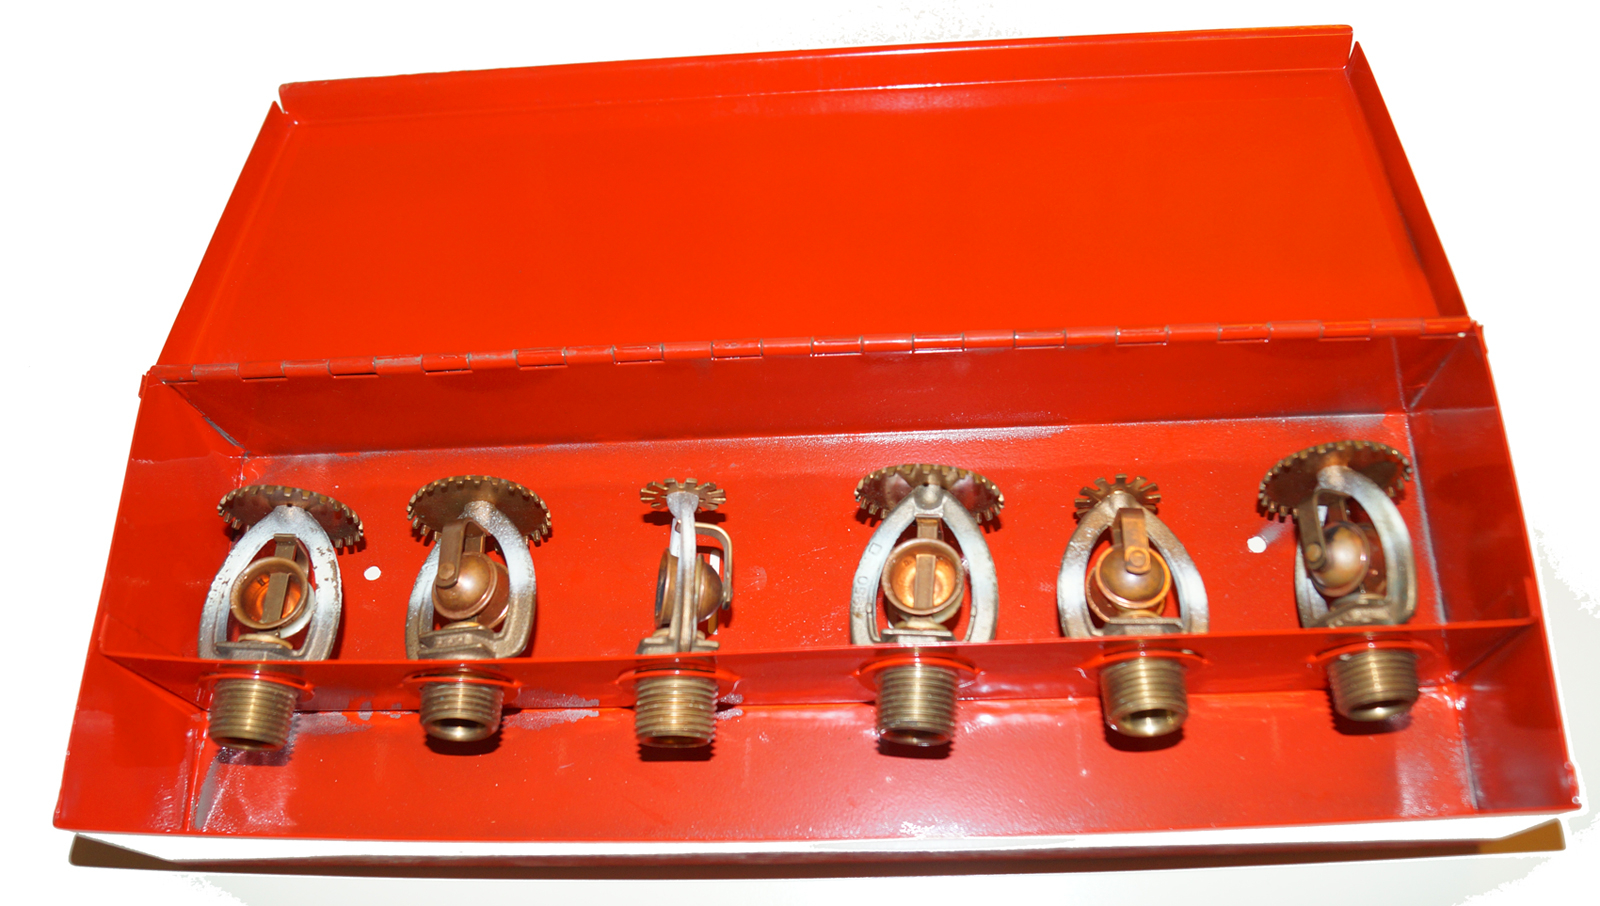 Fire Sprinkler Heads with Storage Box (6) Total